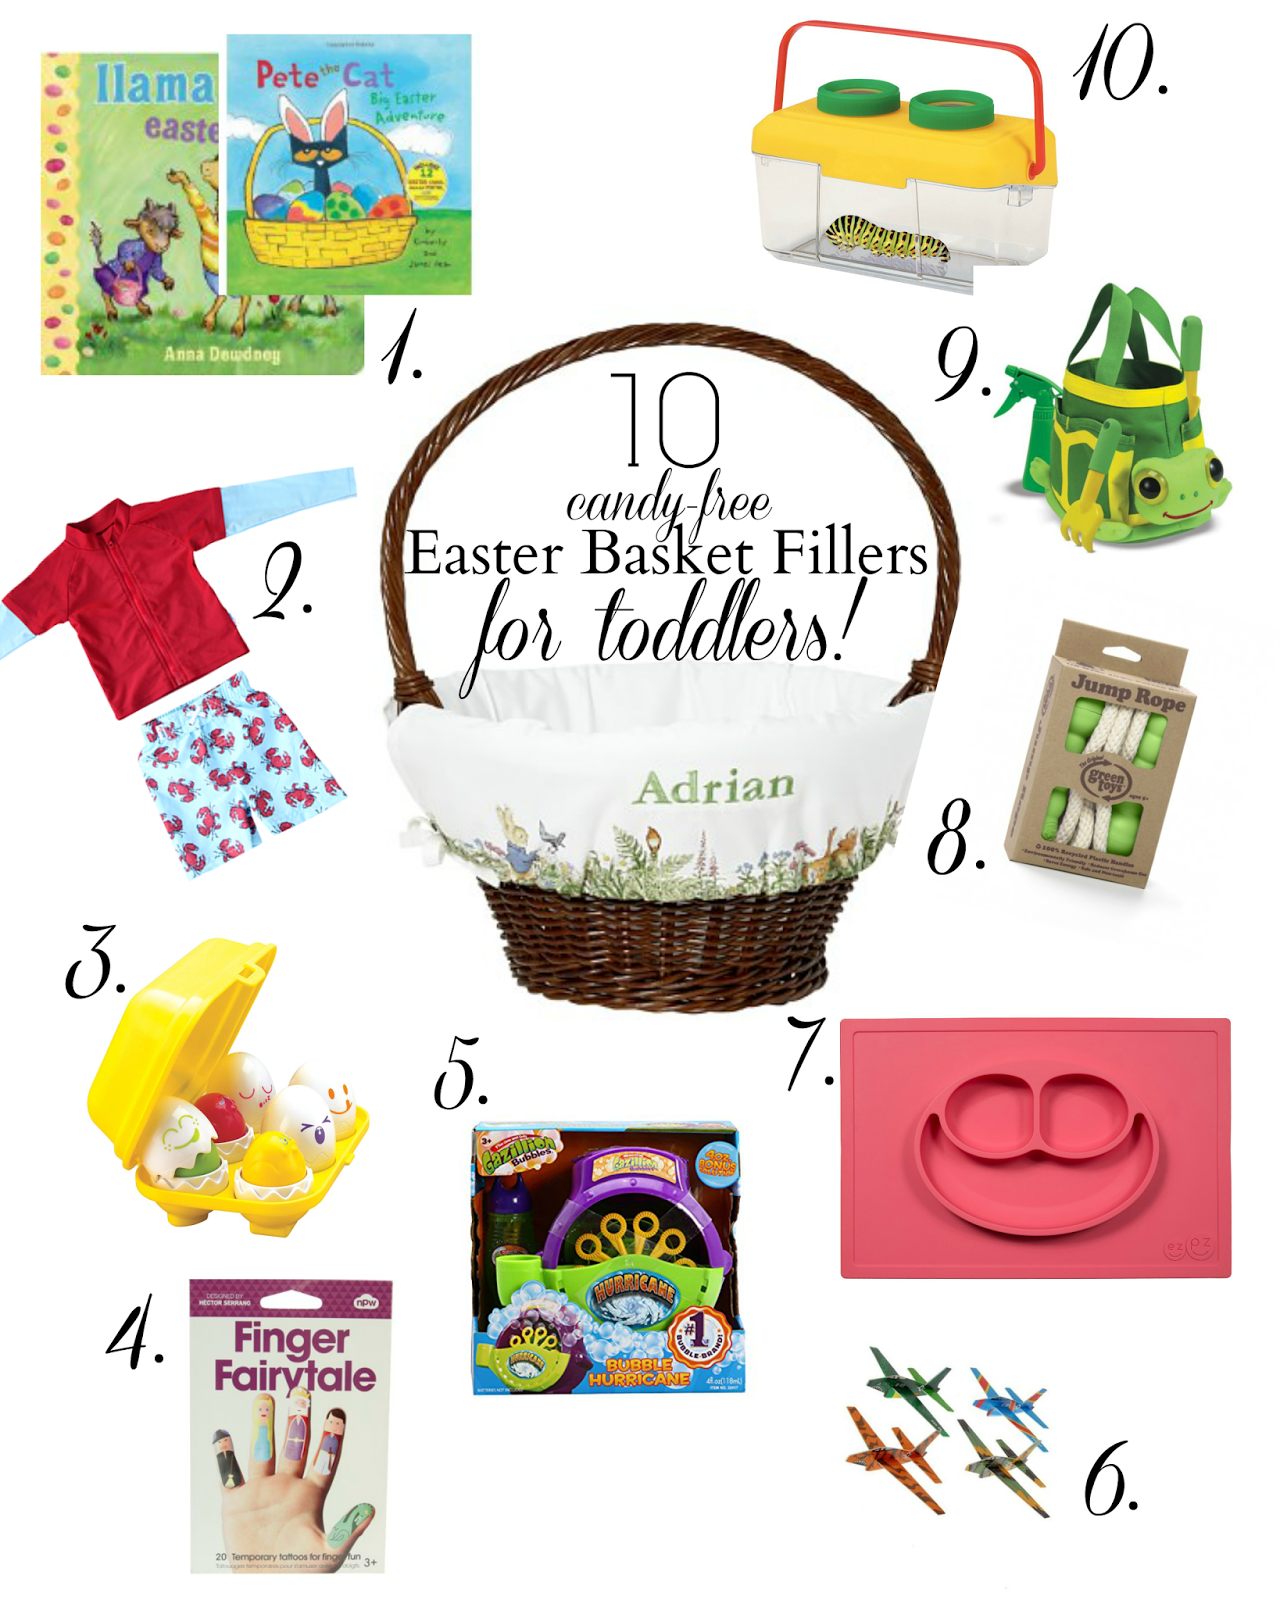 I love you more than carrots 10 easter basket filler ideas for always looking for new ideas heres what youll find stuffed inside the boys baskets this year consider this an official candy free easter basket negle Choice Image